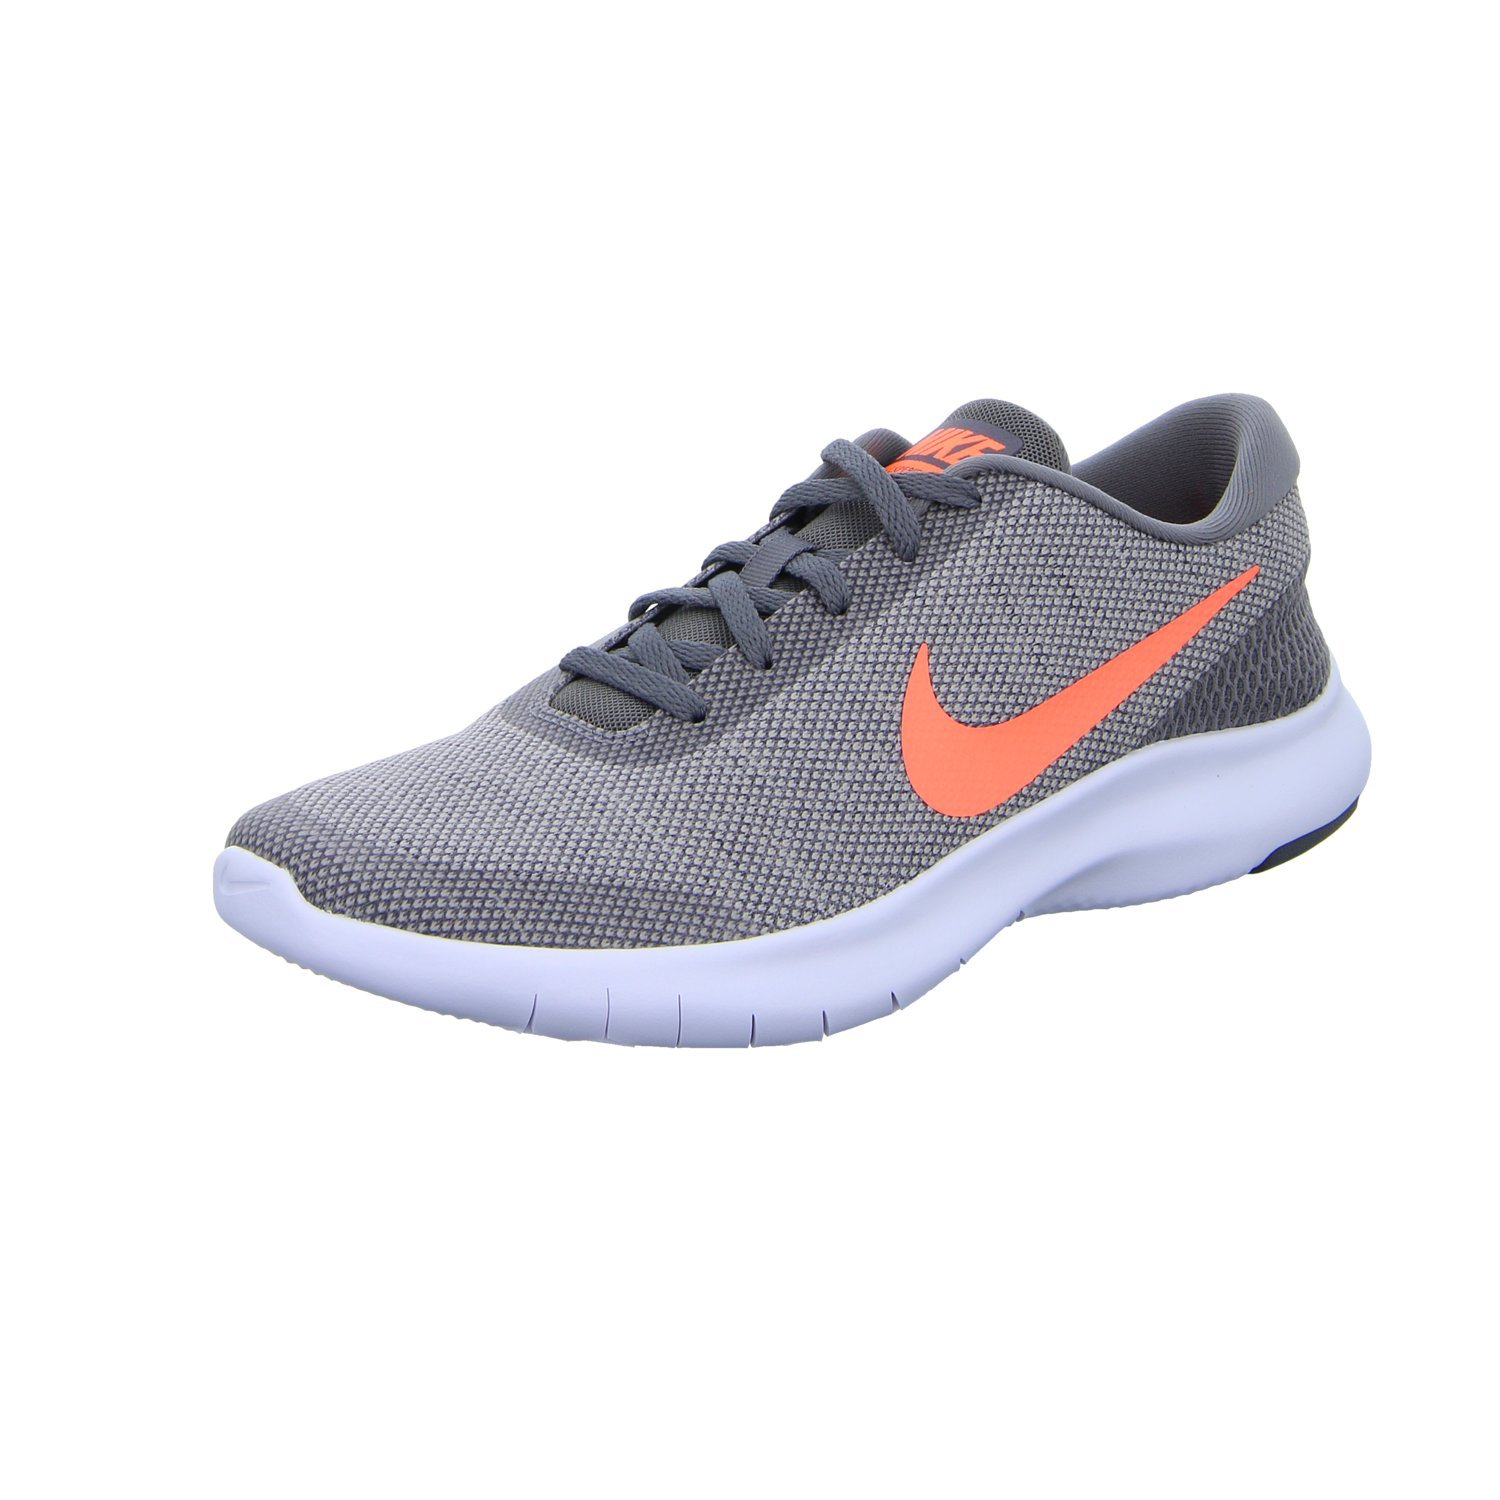 NIKE Women's Flex Experience 7 Running Shoe B017IWGQRS 10 B(M) US|Gunsmoke/Crimson Pulse/Vast Grey White